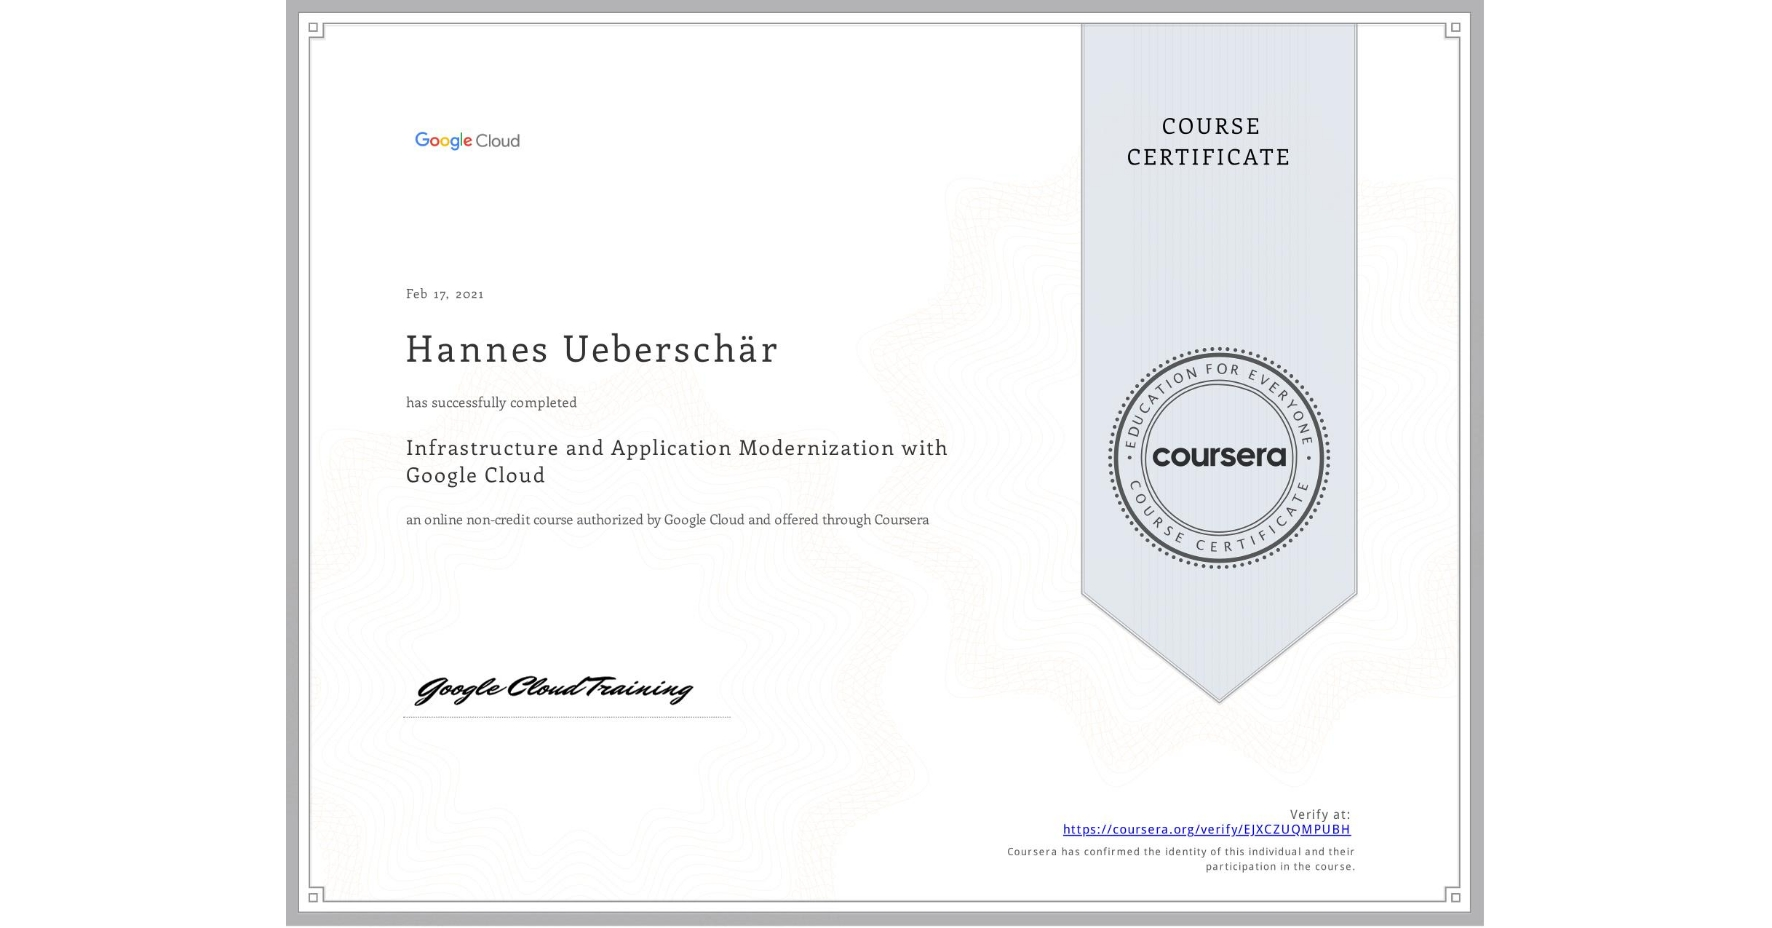 View certificate for Hannes Ueberschär, Infrastructure and Application Modernization with Google Cloud, an online non-credit course authorized by Google Cloud and offered through Coursera